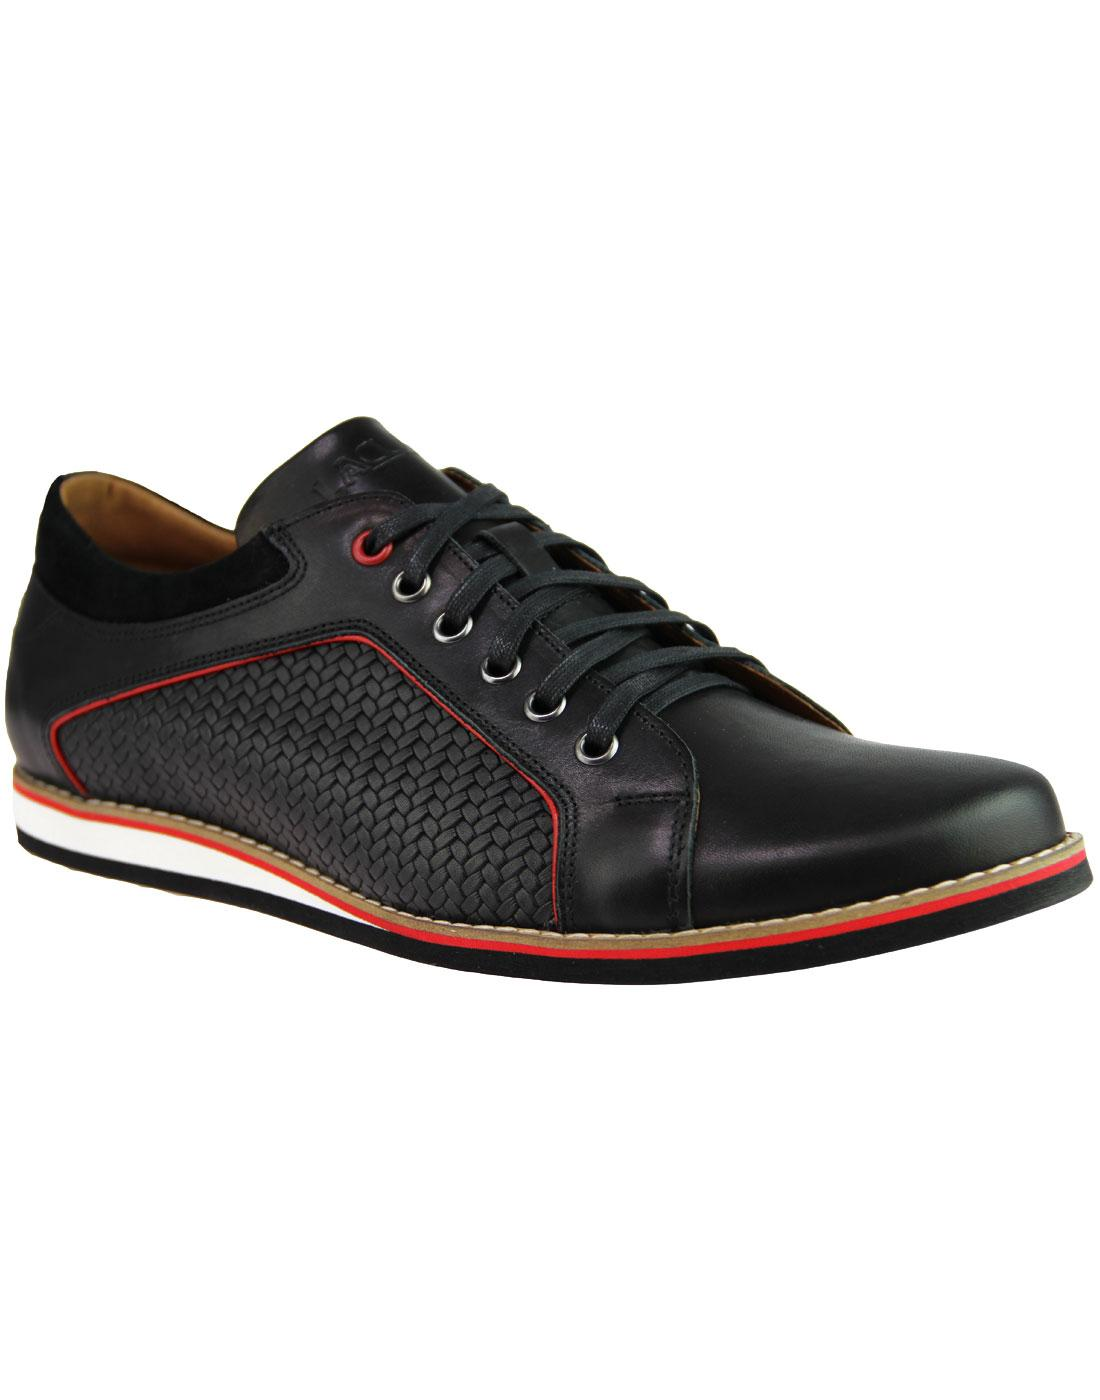 LACUZZO Retro Weave Northern Soul Trainer Shoes B